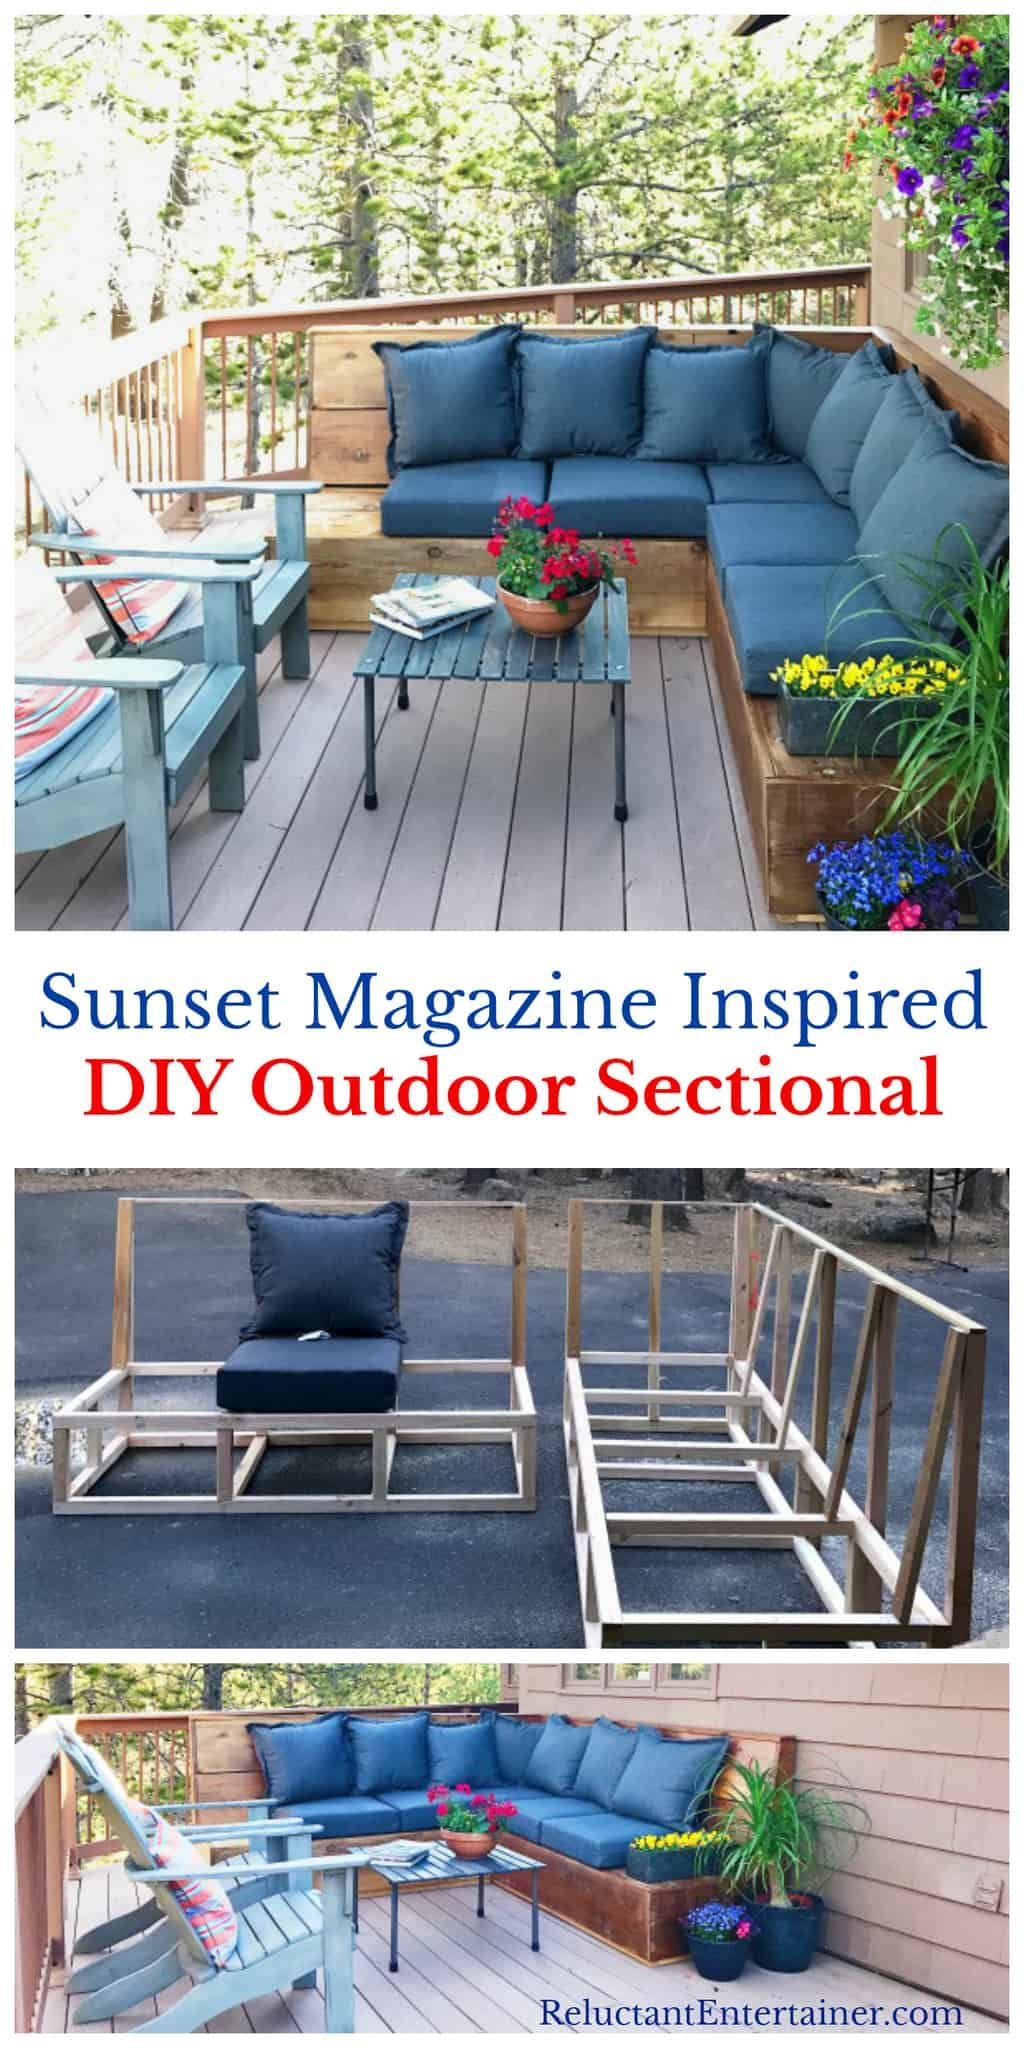 Sunset Magazine Inspired DIY Outdoor Sectional L shaped couch is